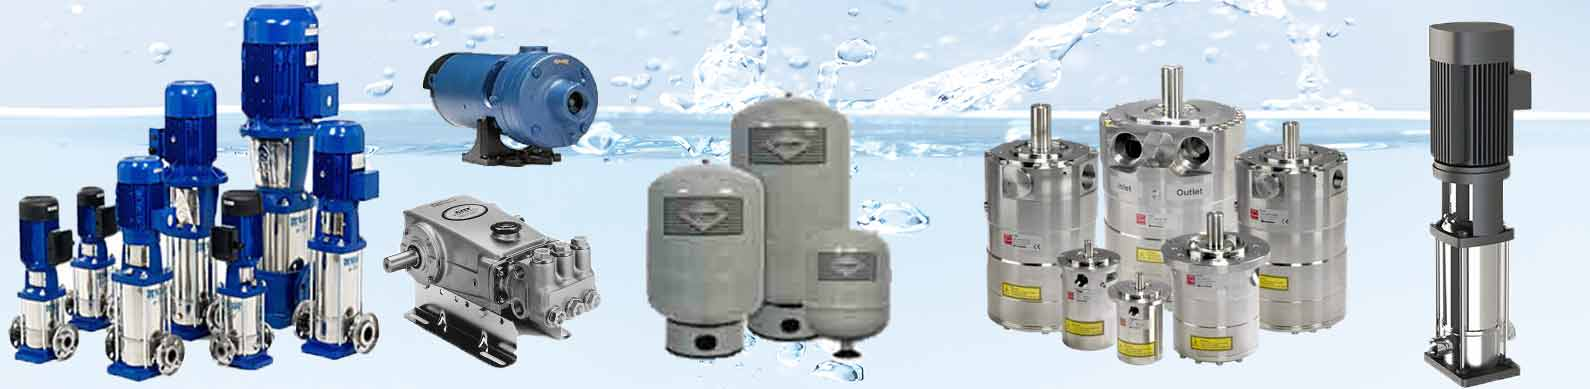 commercial-water-pump-parts.jpg